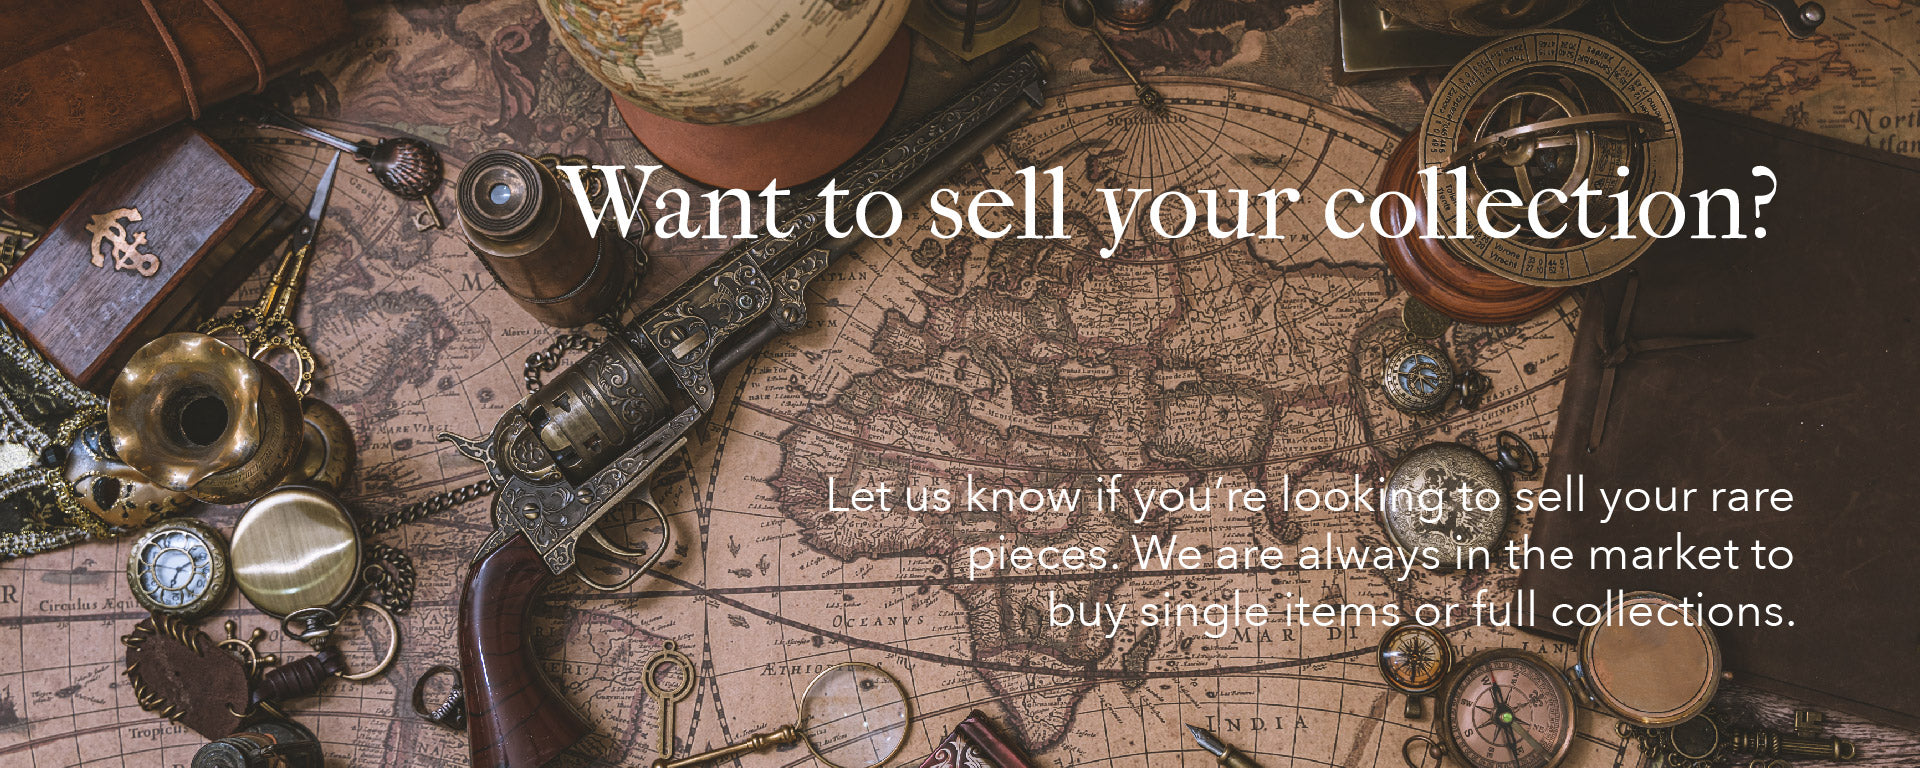 Sell Your Collection Banner